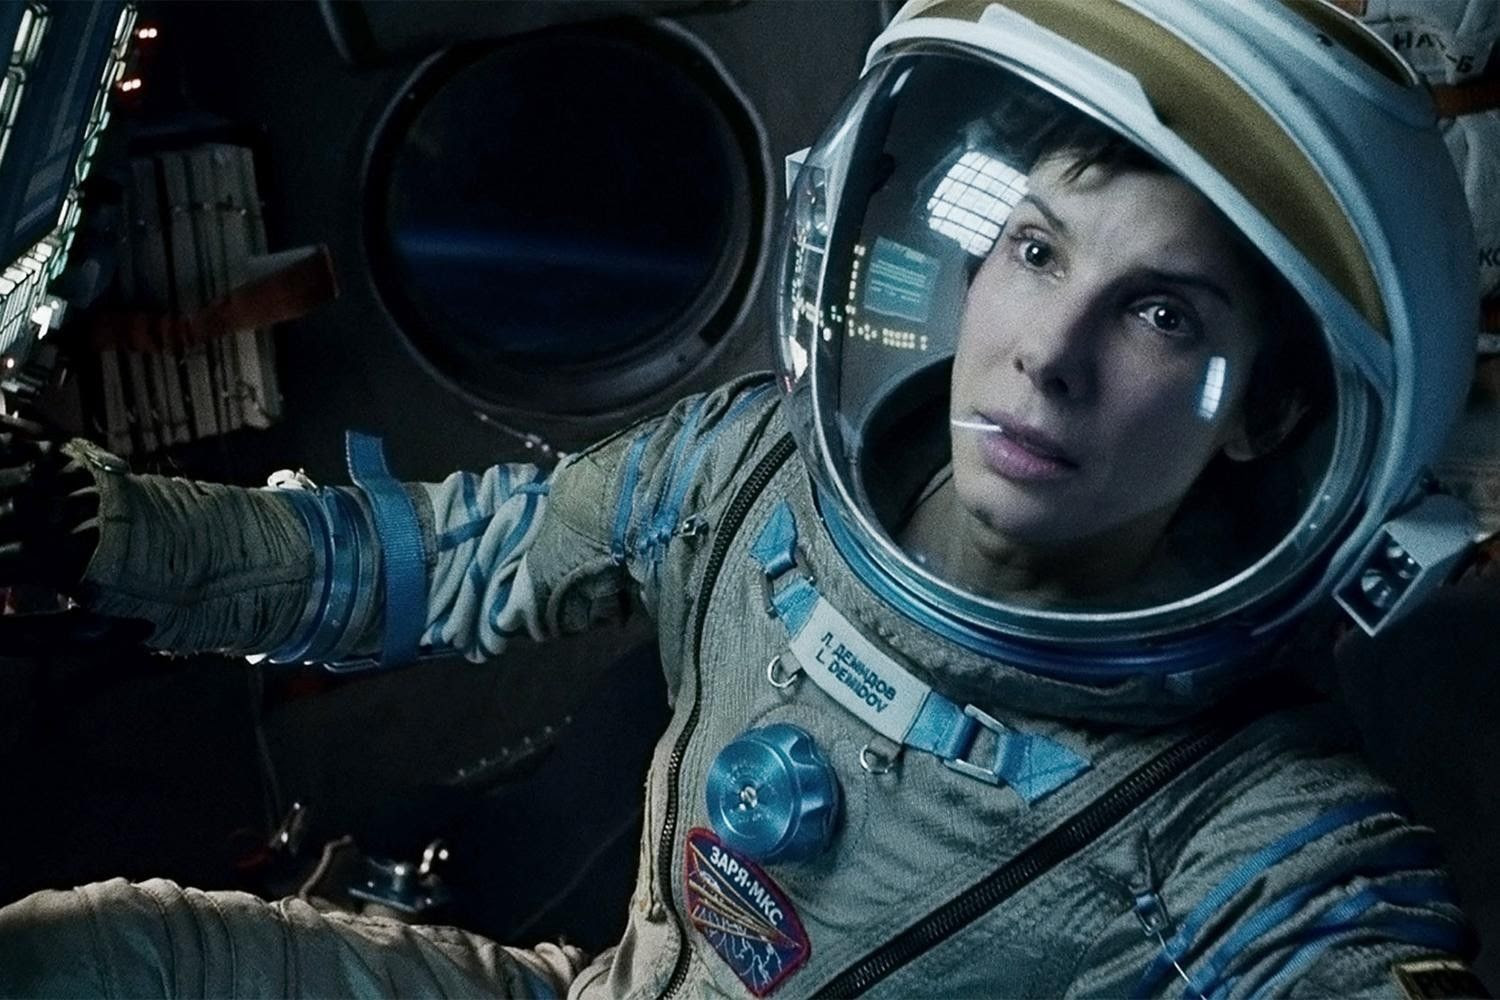 Sandra Bullock : Gravity photo gravity-movie-review-sandra-bullock-suit-2.jpg